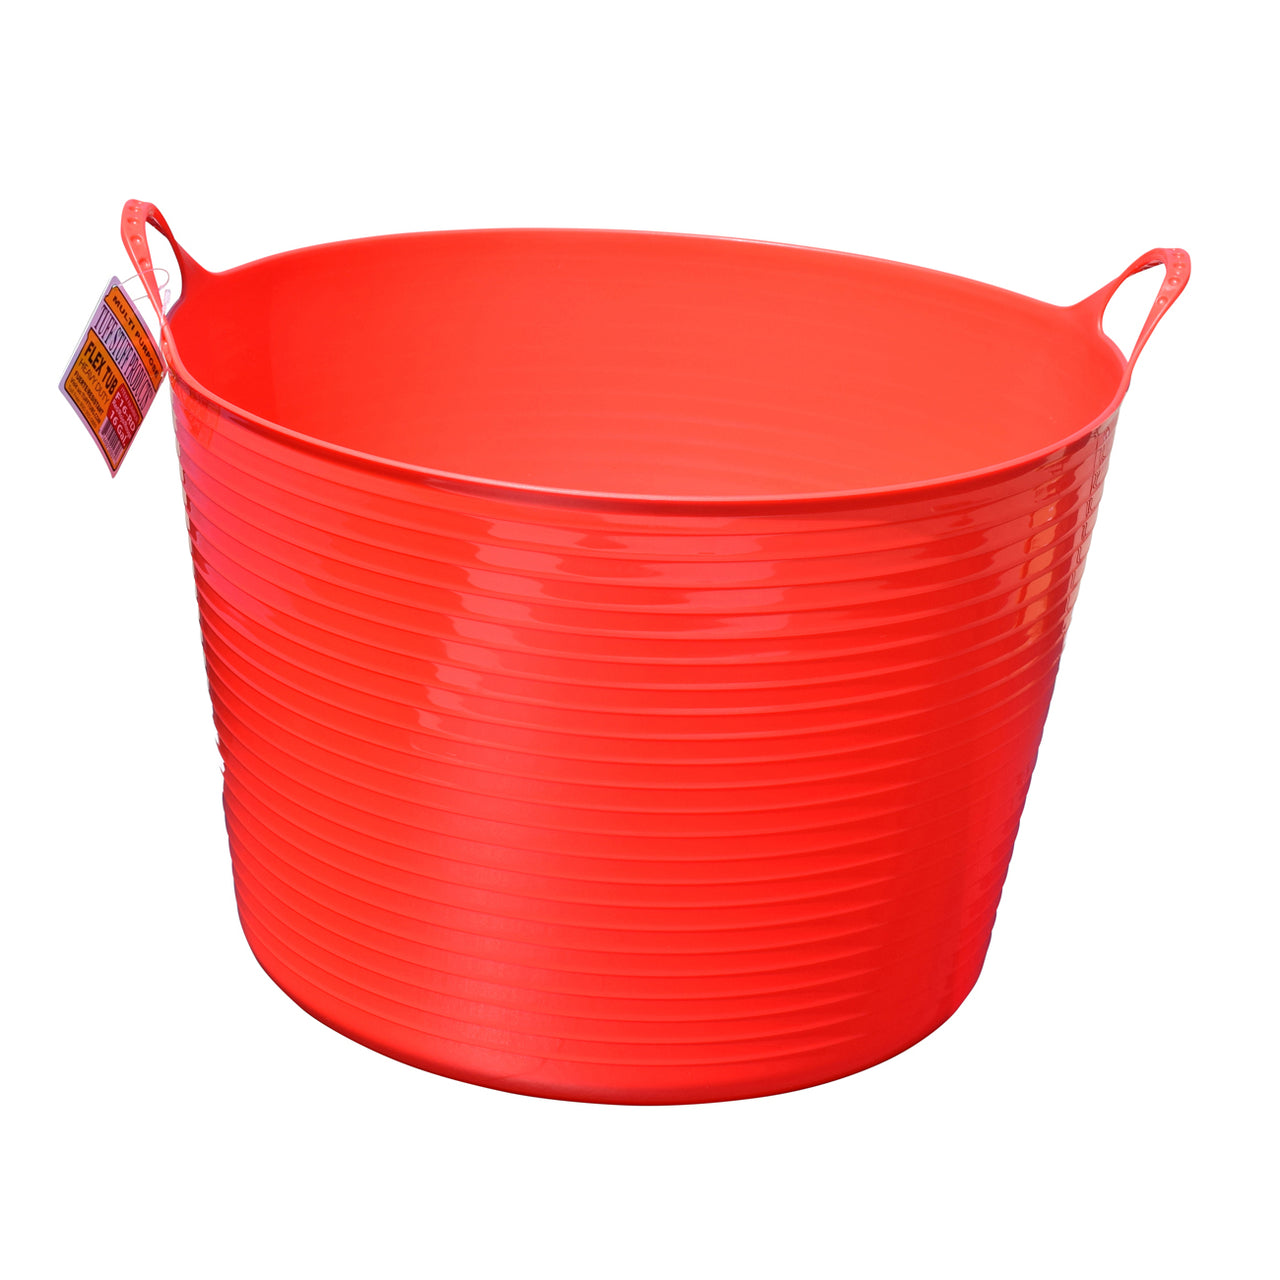 Tuff Stuff Flex Tub - Red (4 Sizes) - Buckets Pails Feeders Scoops Tubs Bottles Tuff Stuff - Canada